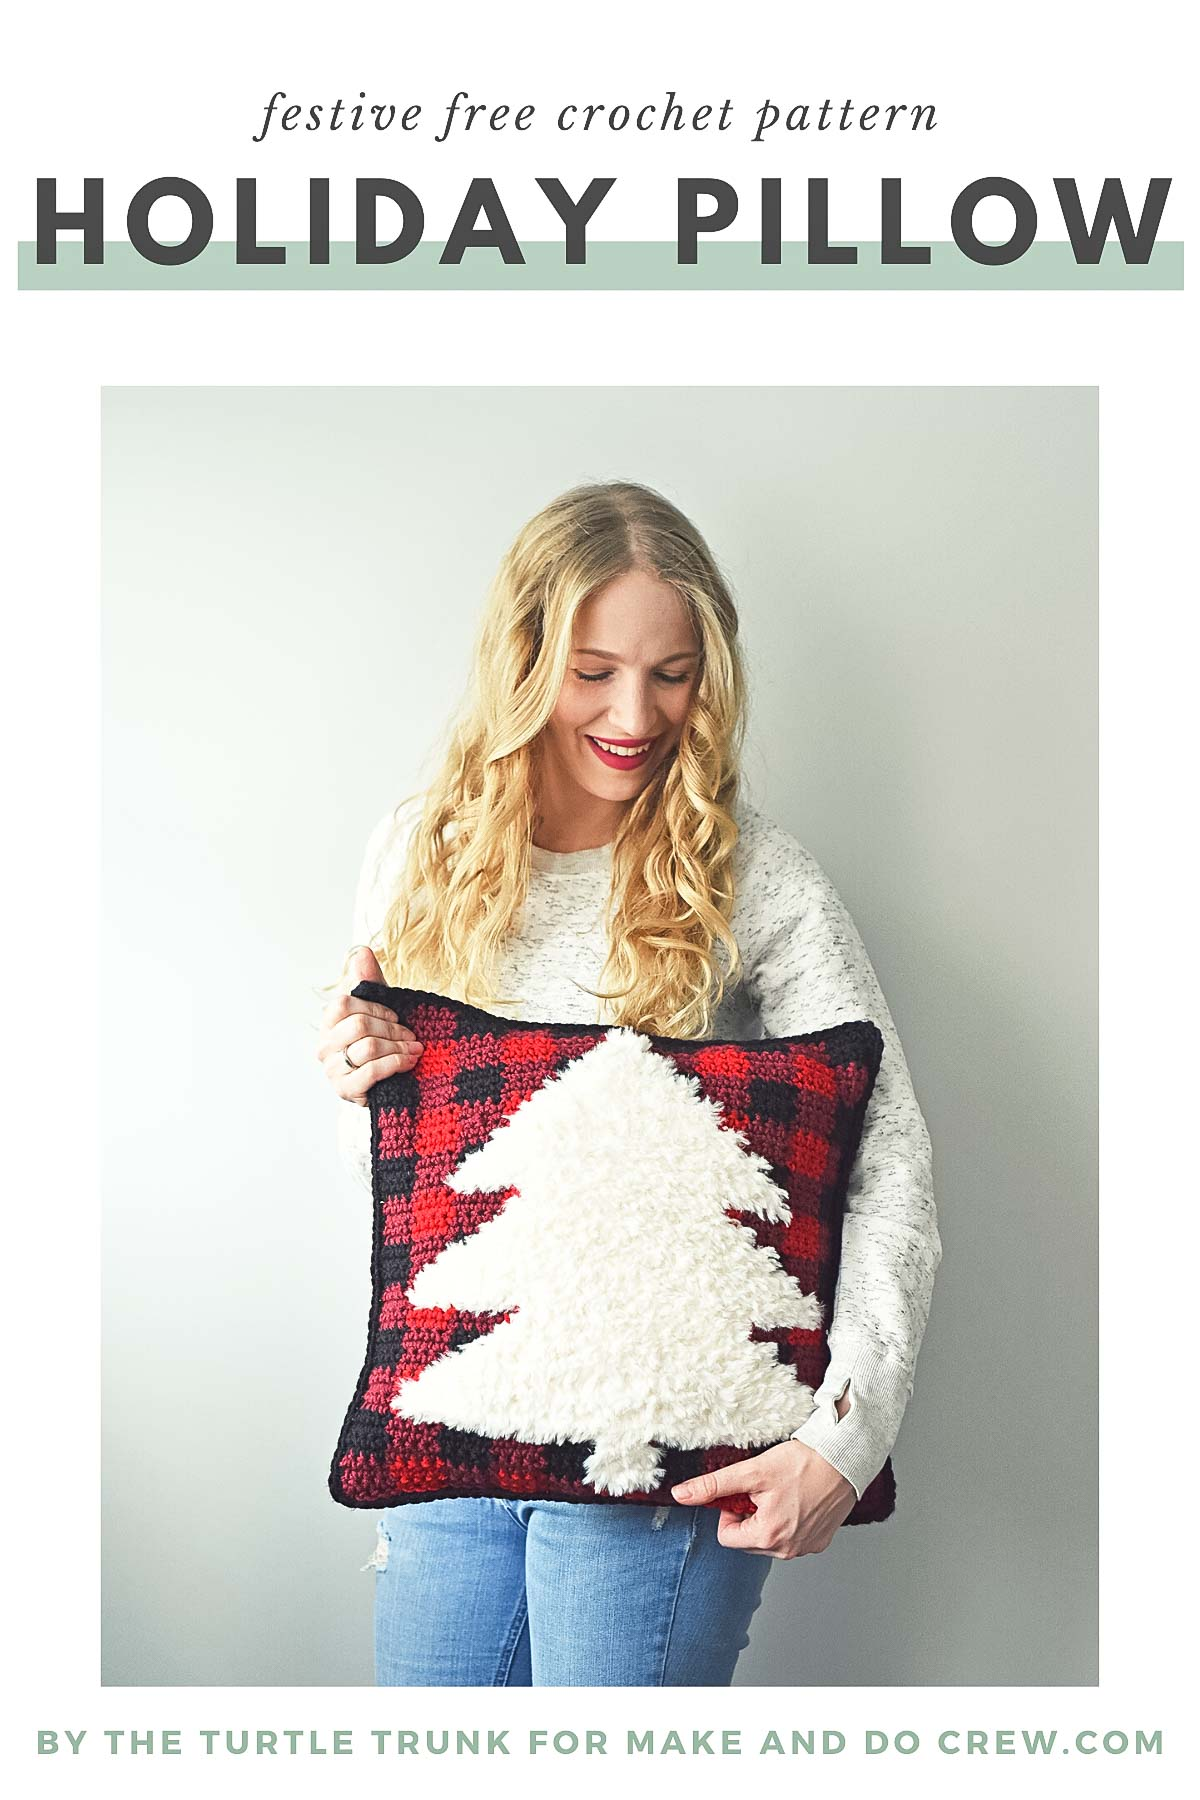 Blonde woman holding a furry crochet buffalo plaid Christmas pillow.